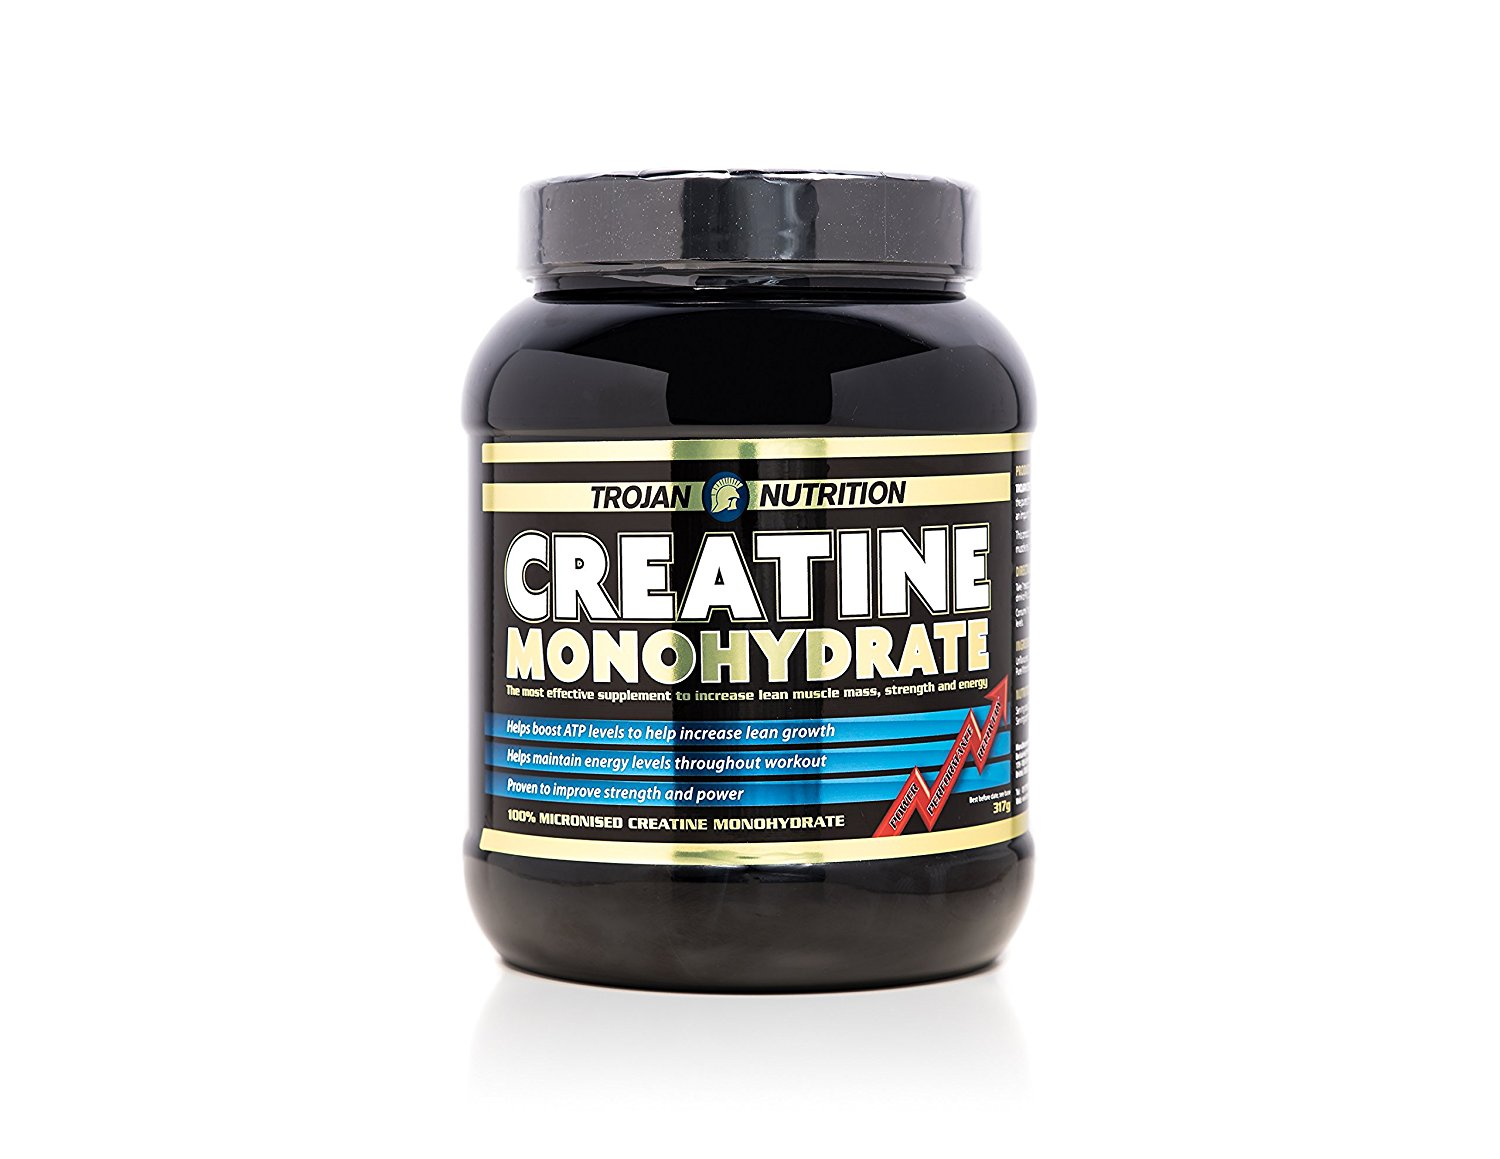 TROJAN NUTRITION 100% PURE MICRONISED CREATINE MONOHYDRATE POWDER - 317G